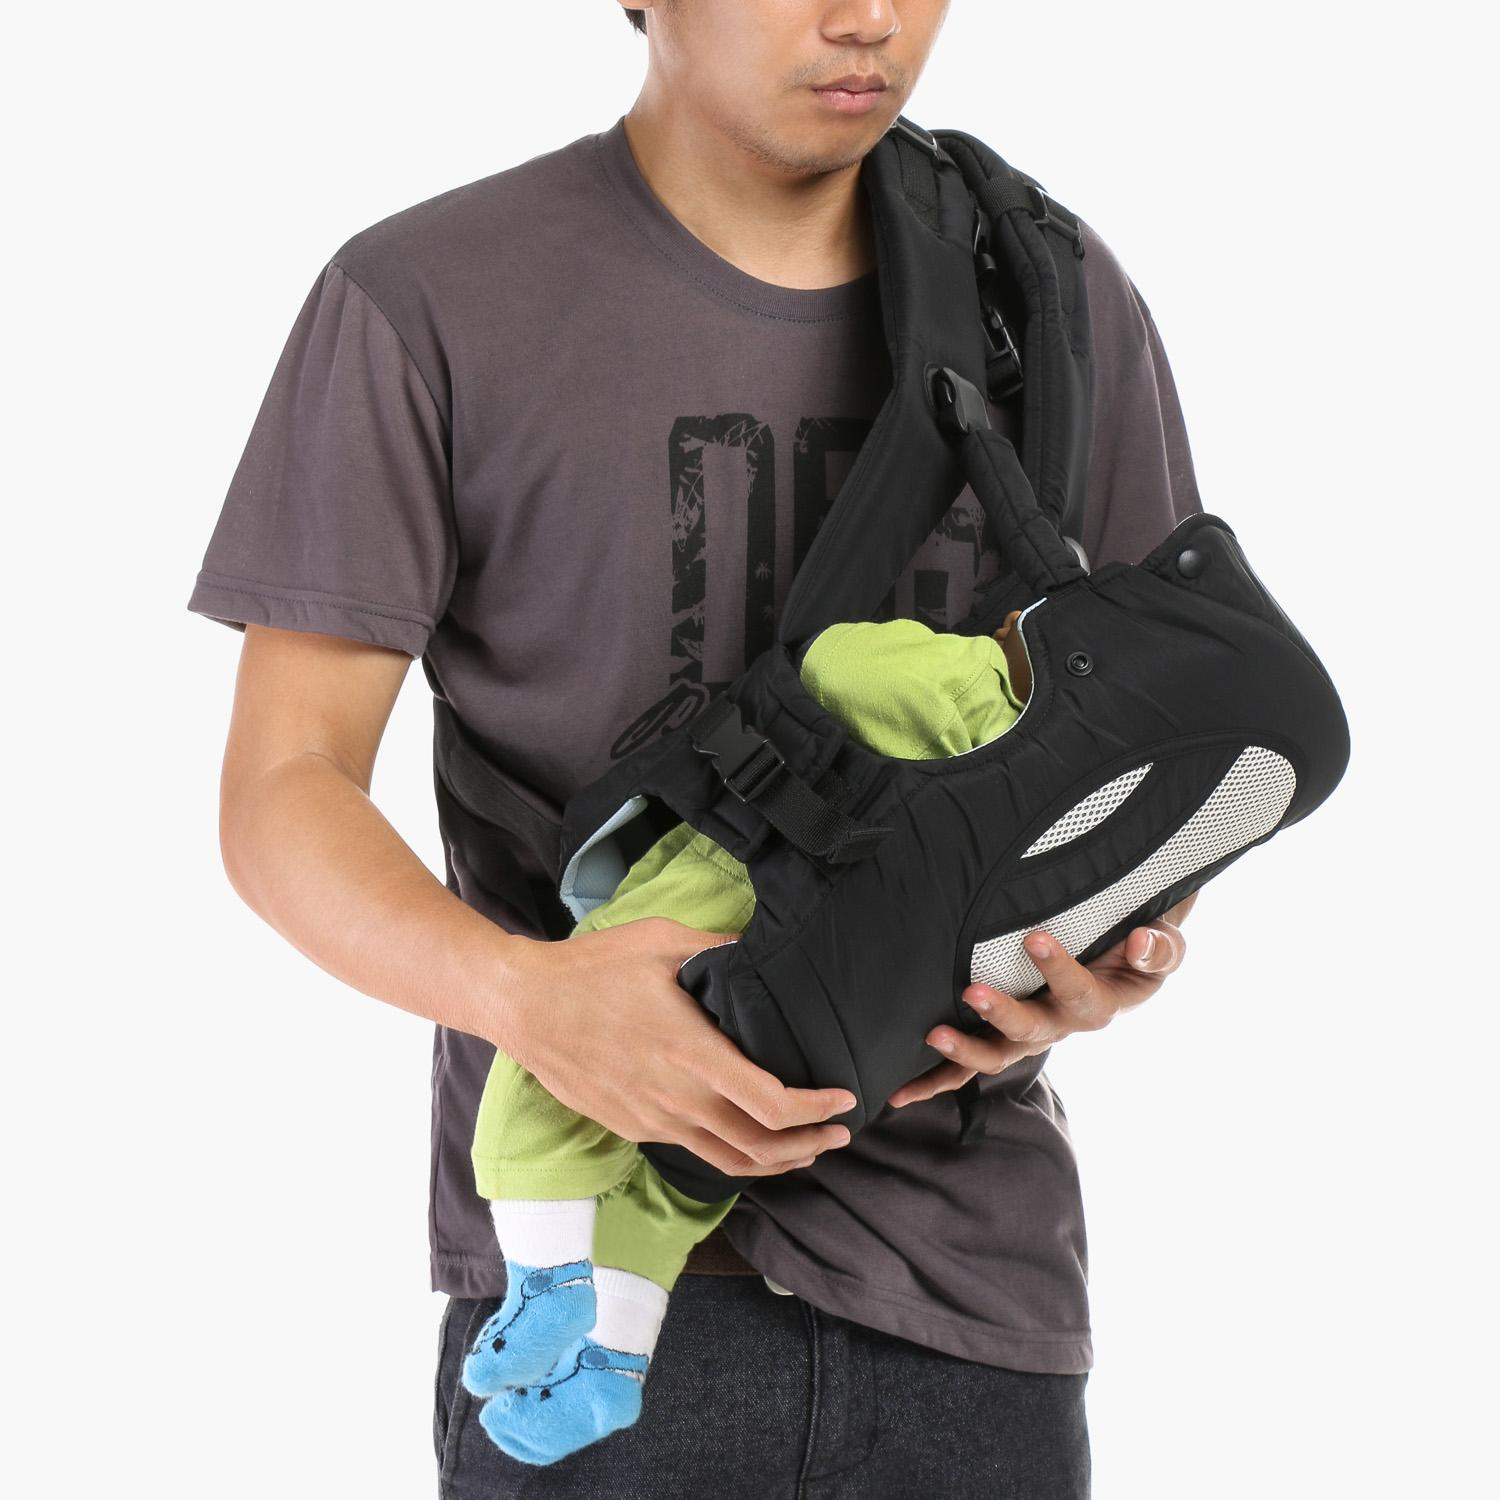 Picolo 4-in-1 Soft Carrier (Black)